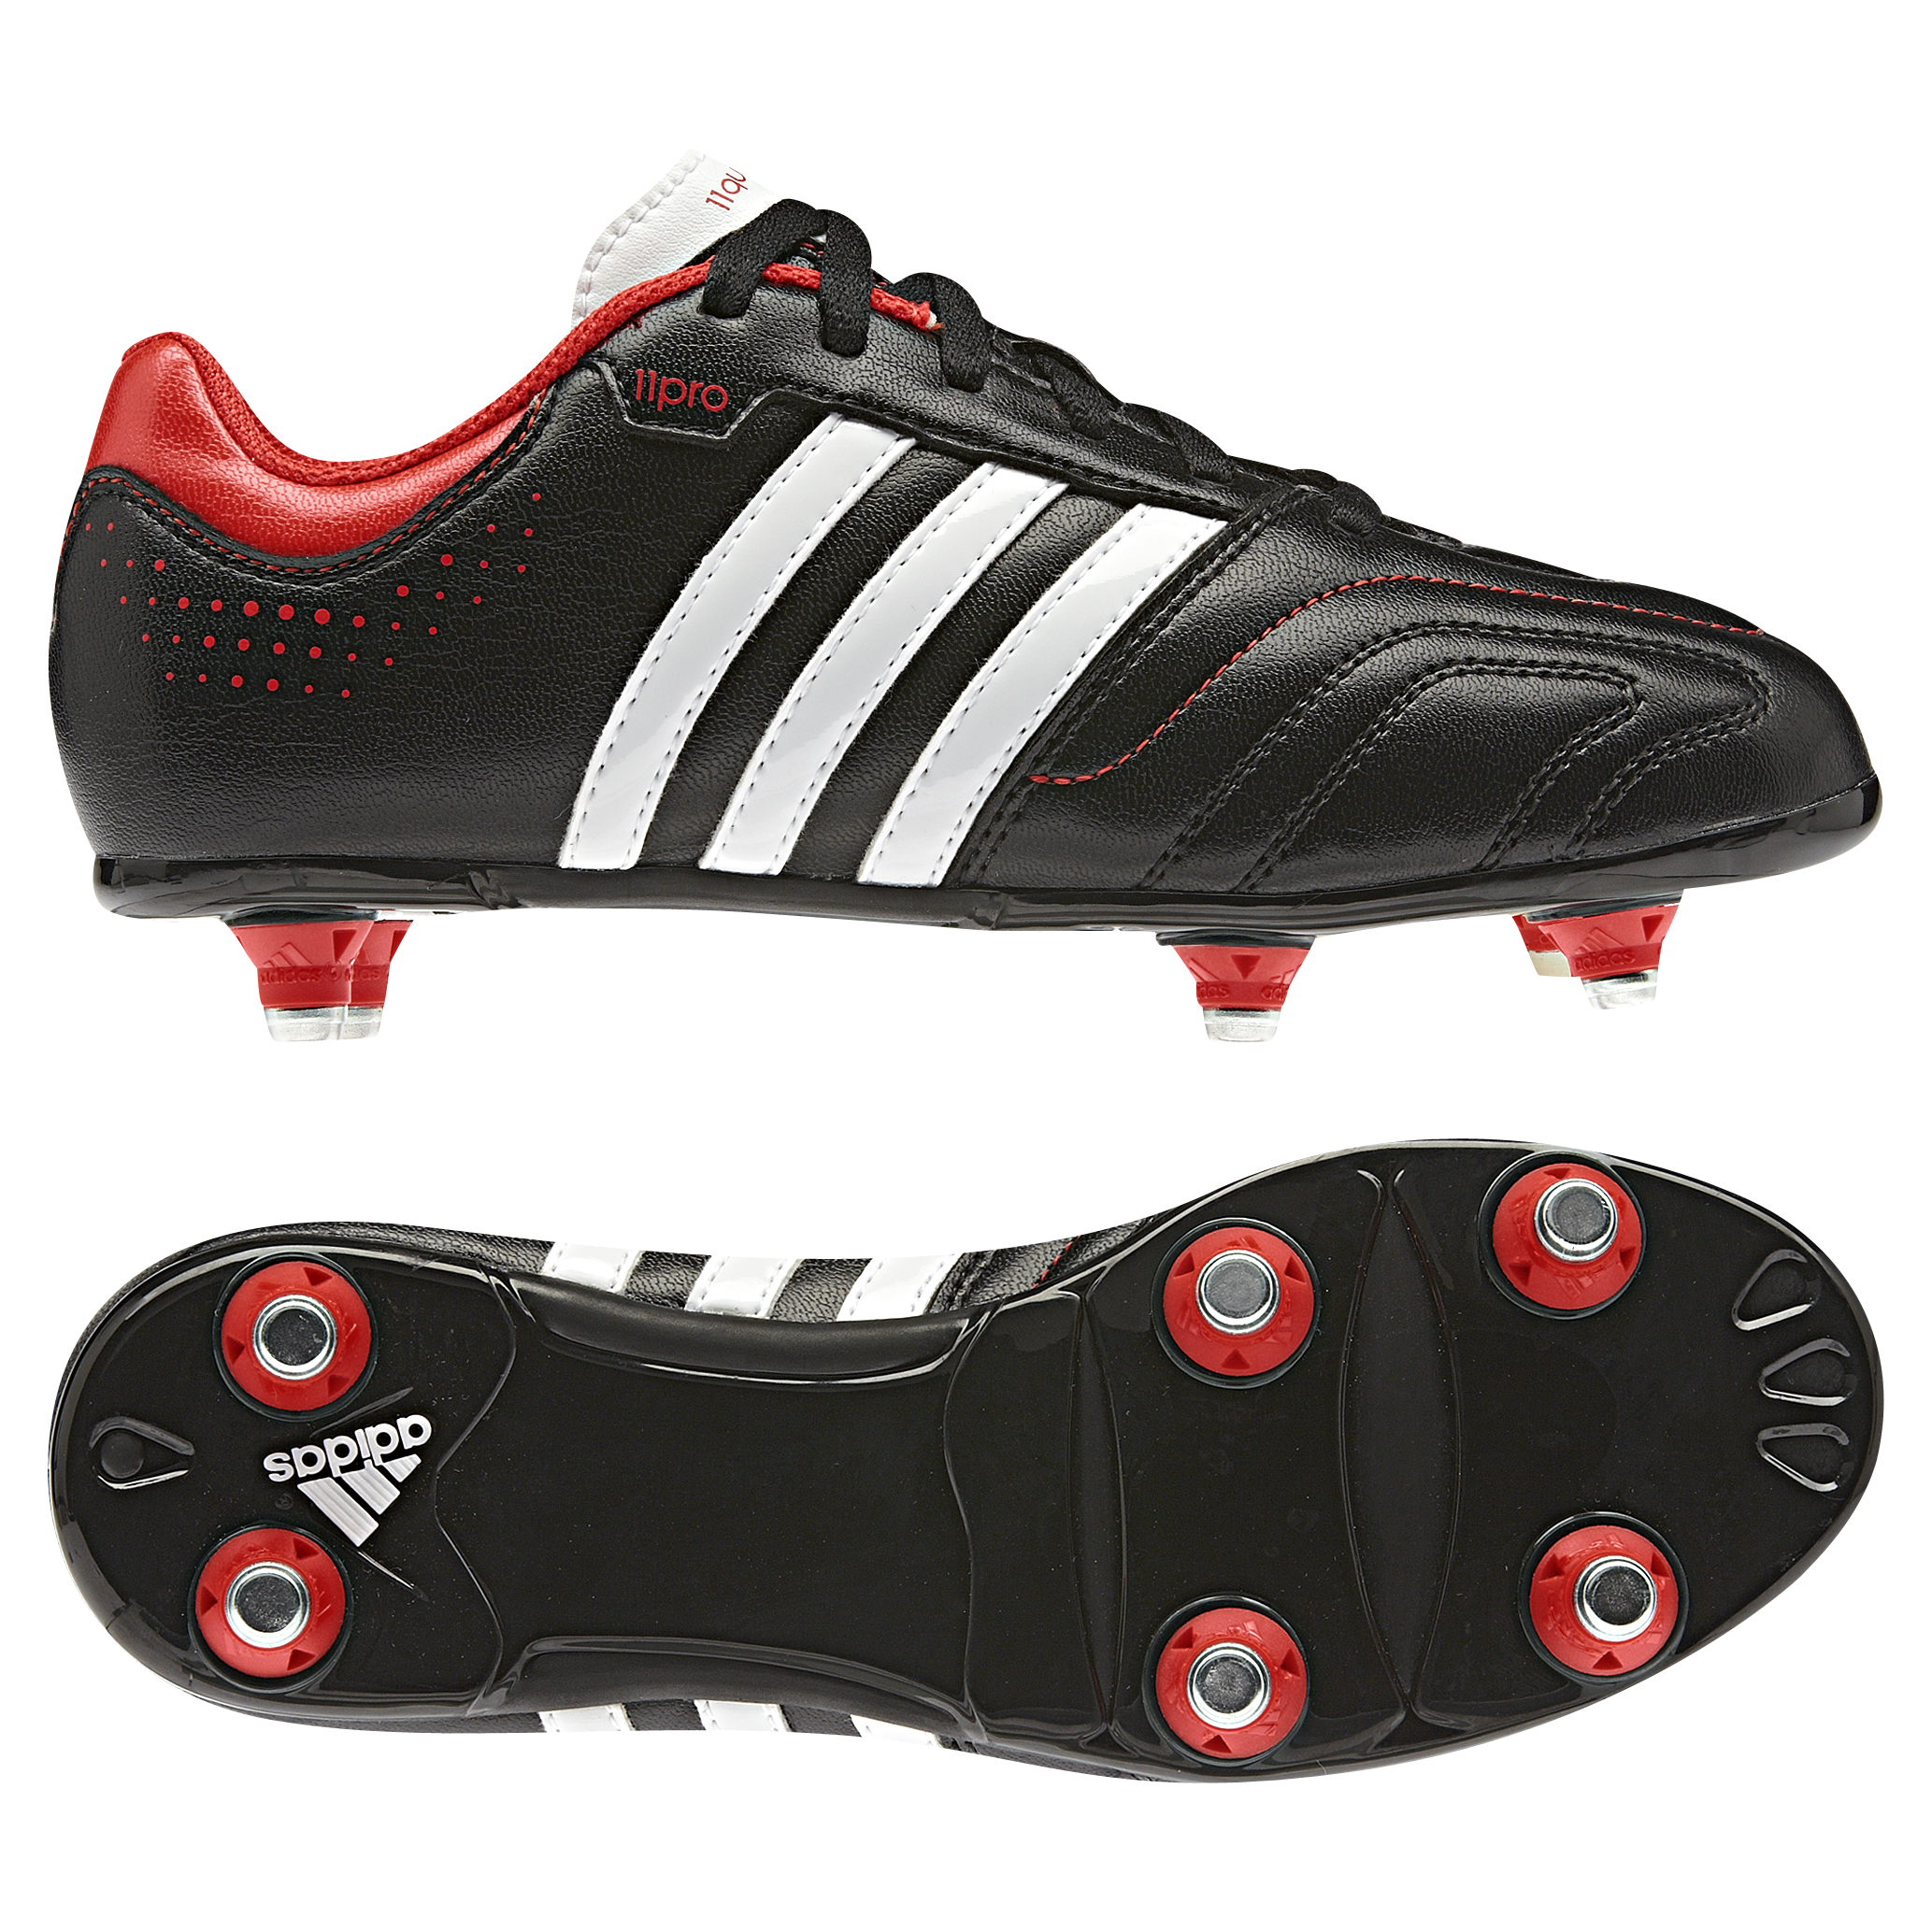 Adidas 11Questra Soft Ground Football Boots - Kids Black